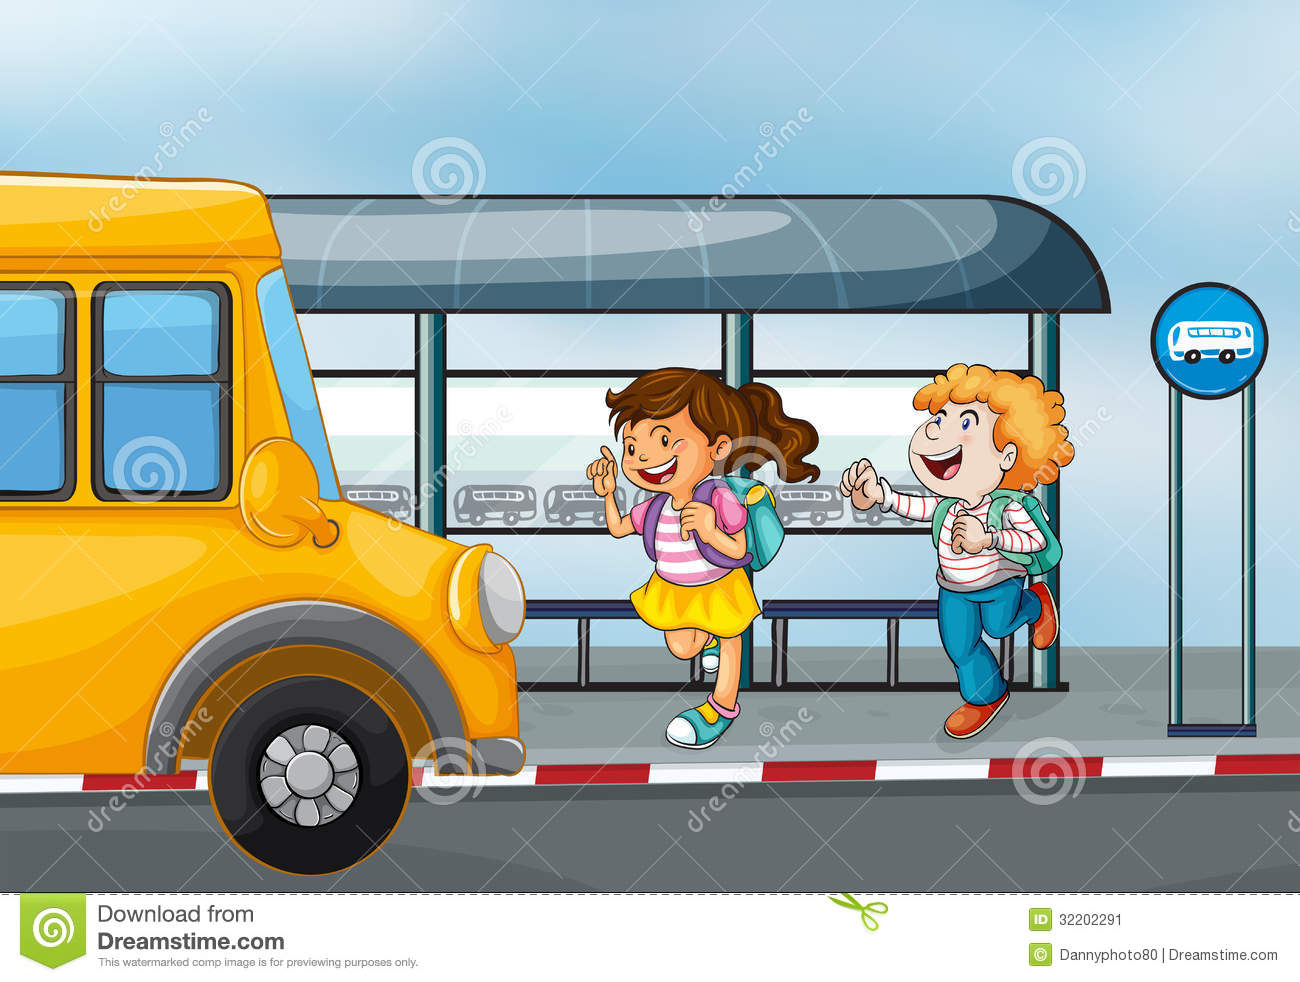 Happy Passengers At The Bus Station Stock Image - Image: 32202291